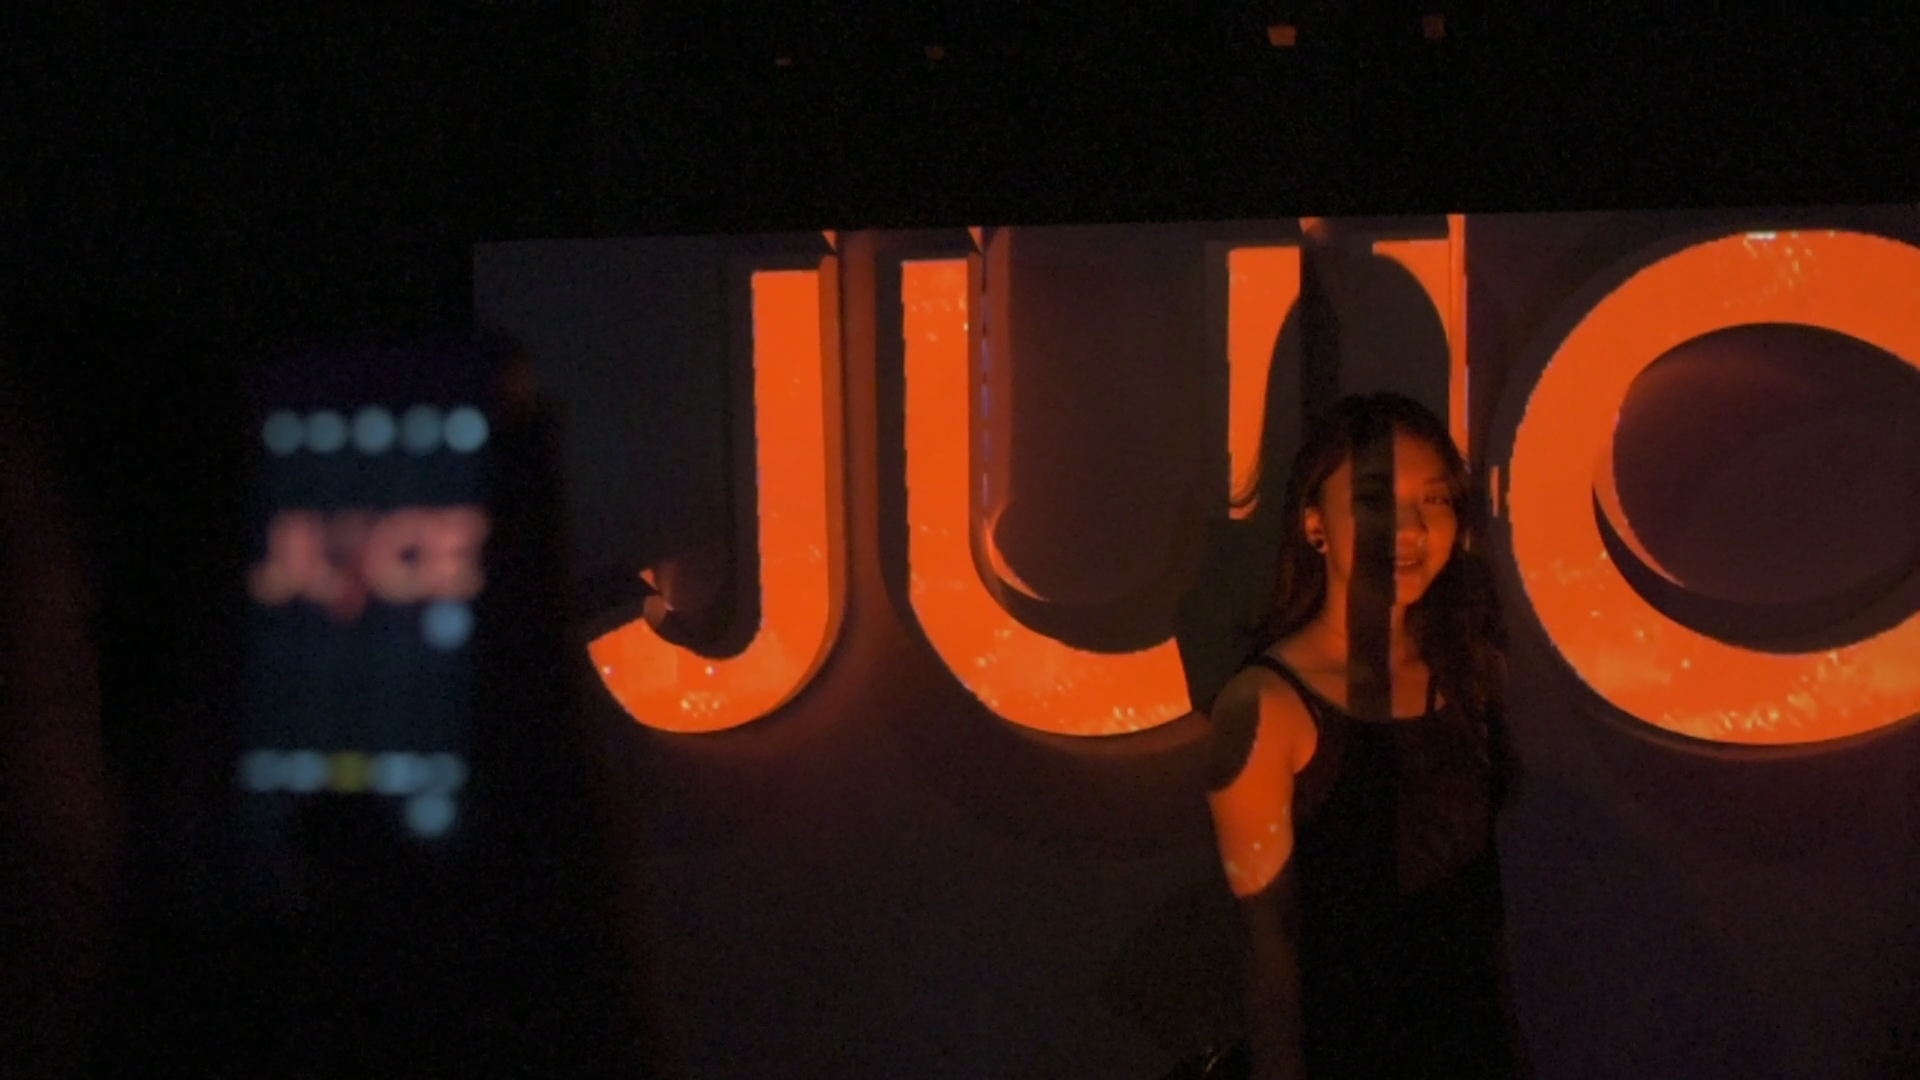 JUICE Sculpture Projection Mapping